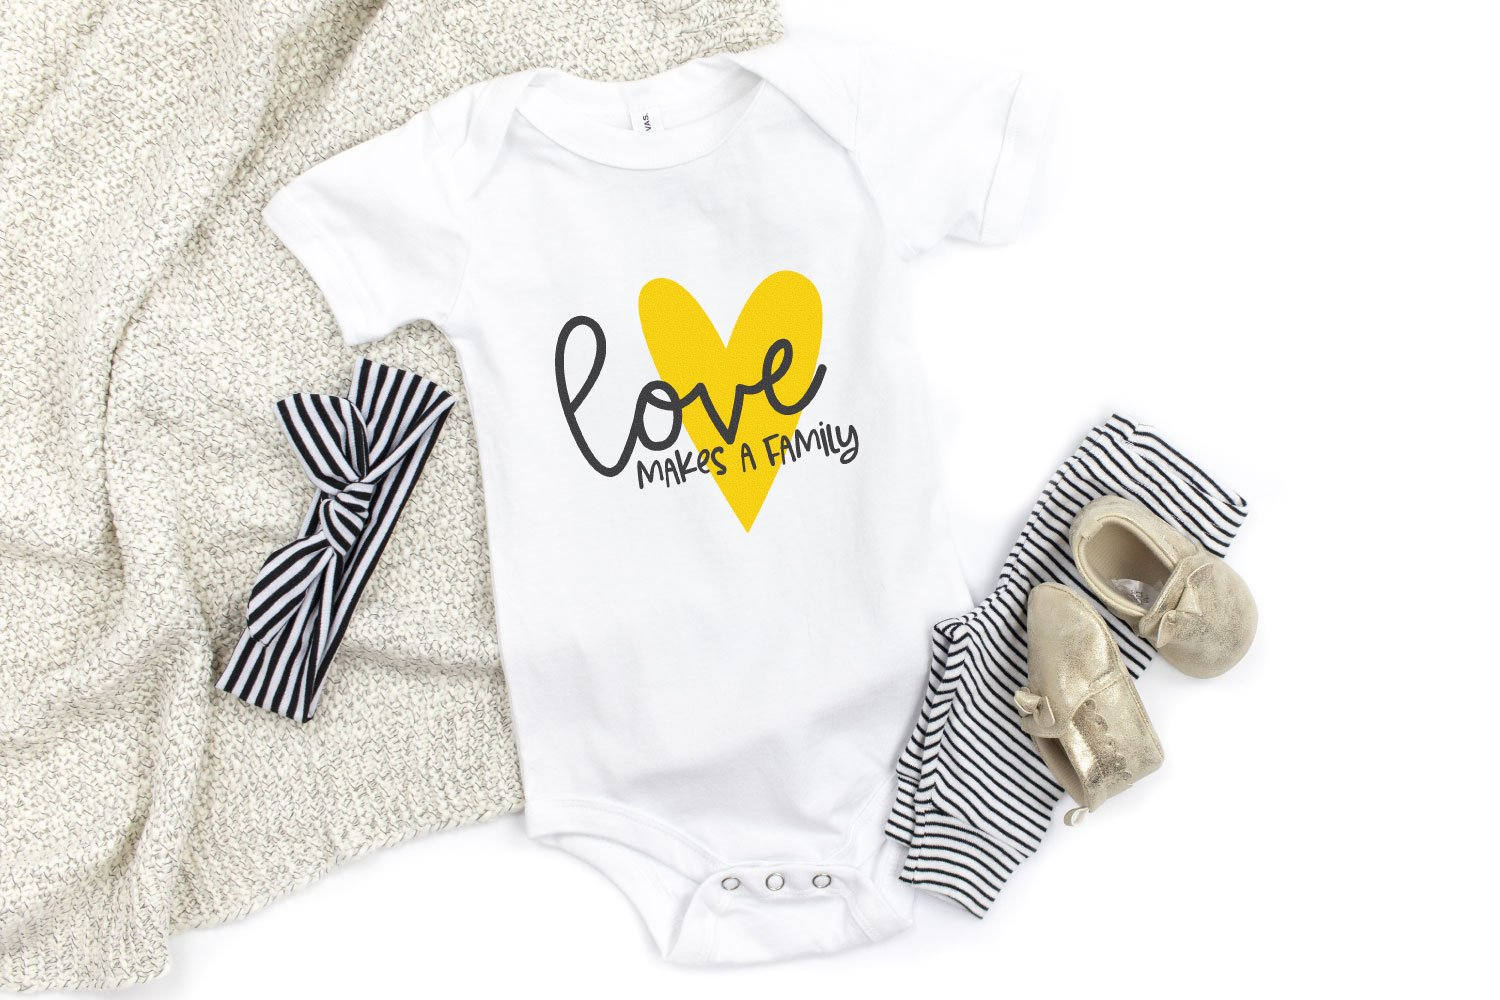 Love Makes a Family decal on onesie with baby shoes, headband, and blanket